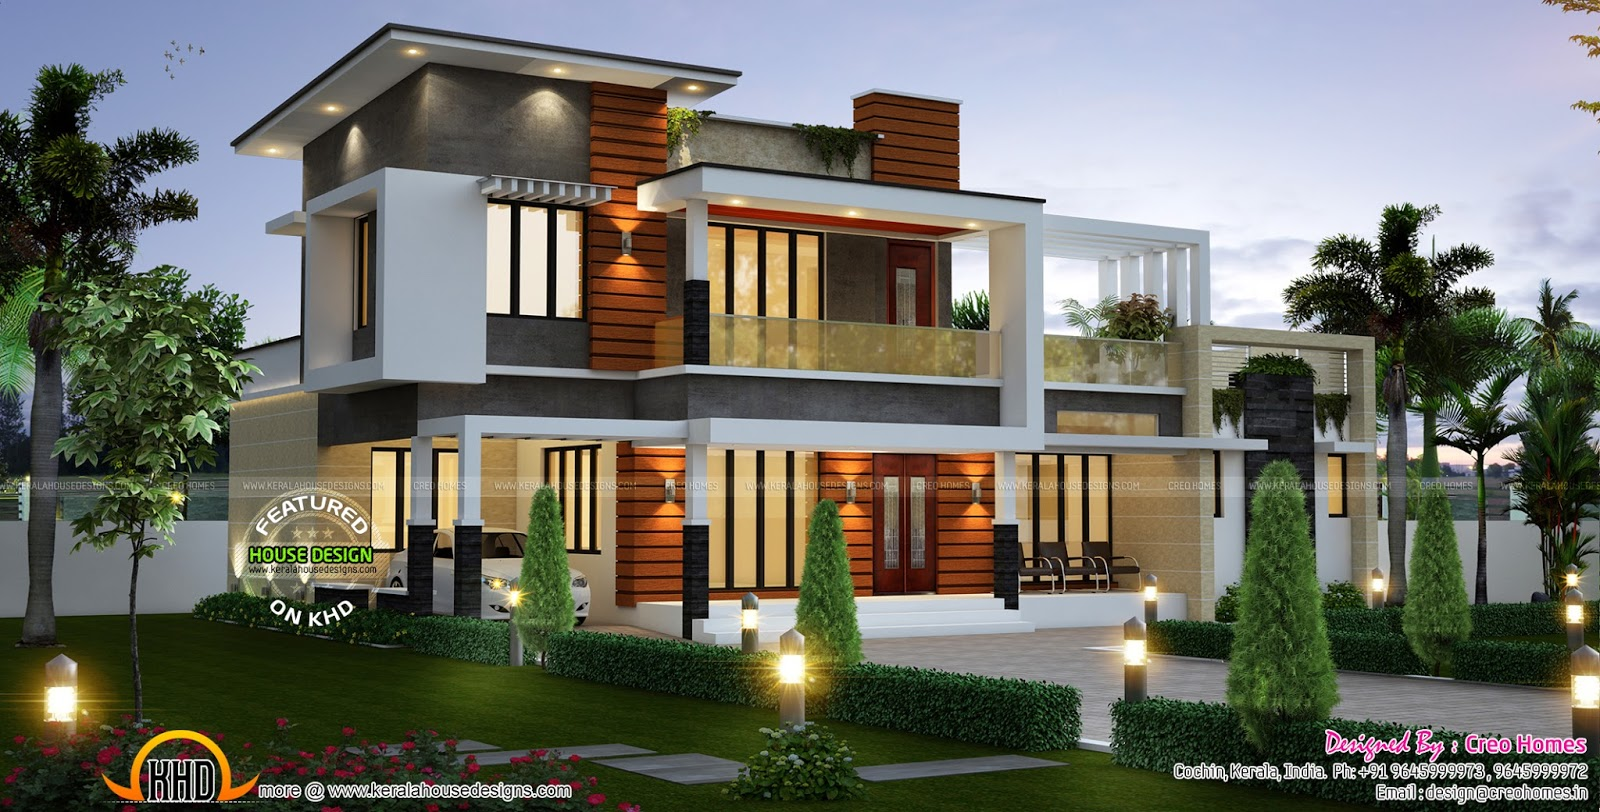 2075 sq ft modern contemporary house kerala home design for Elevated modern house design